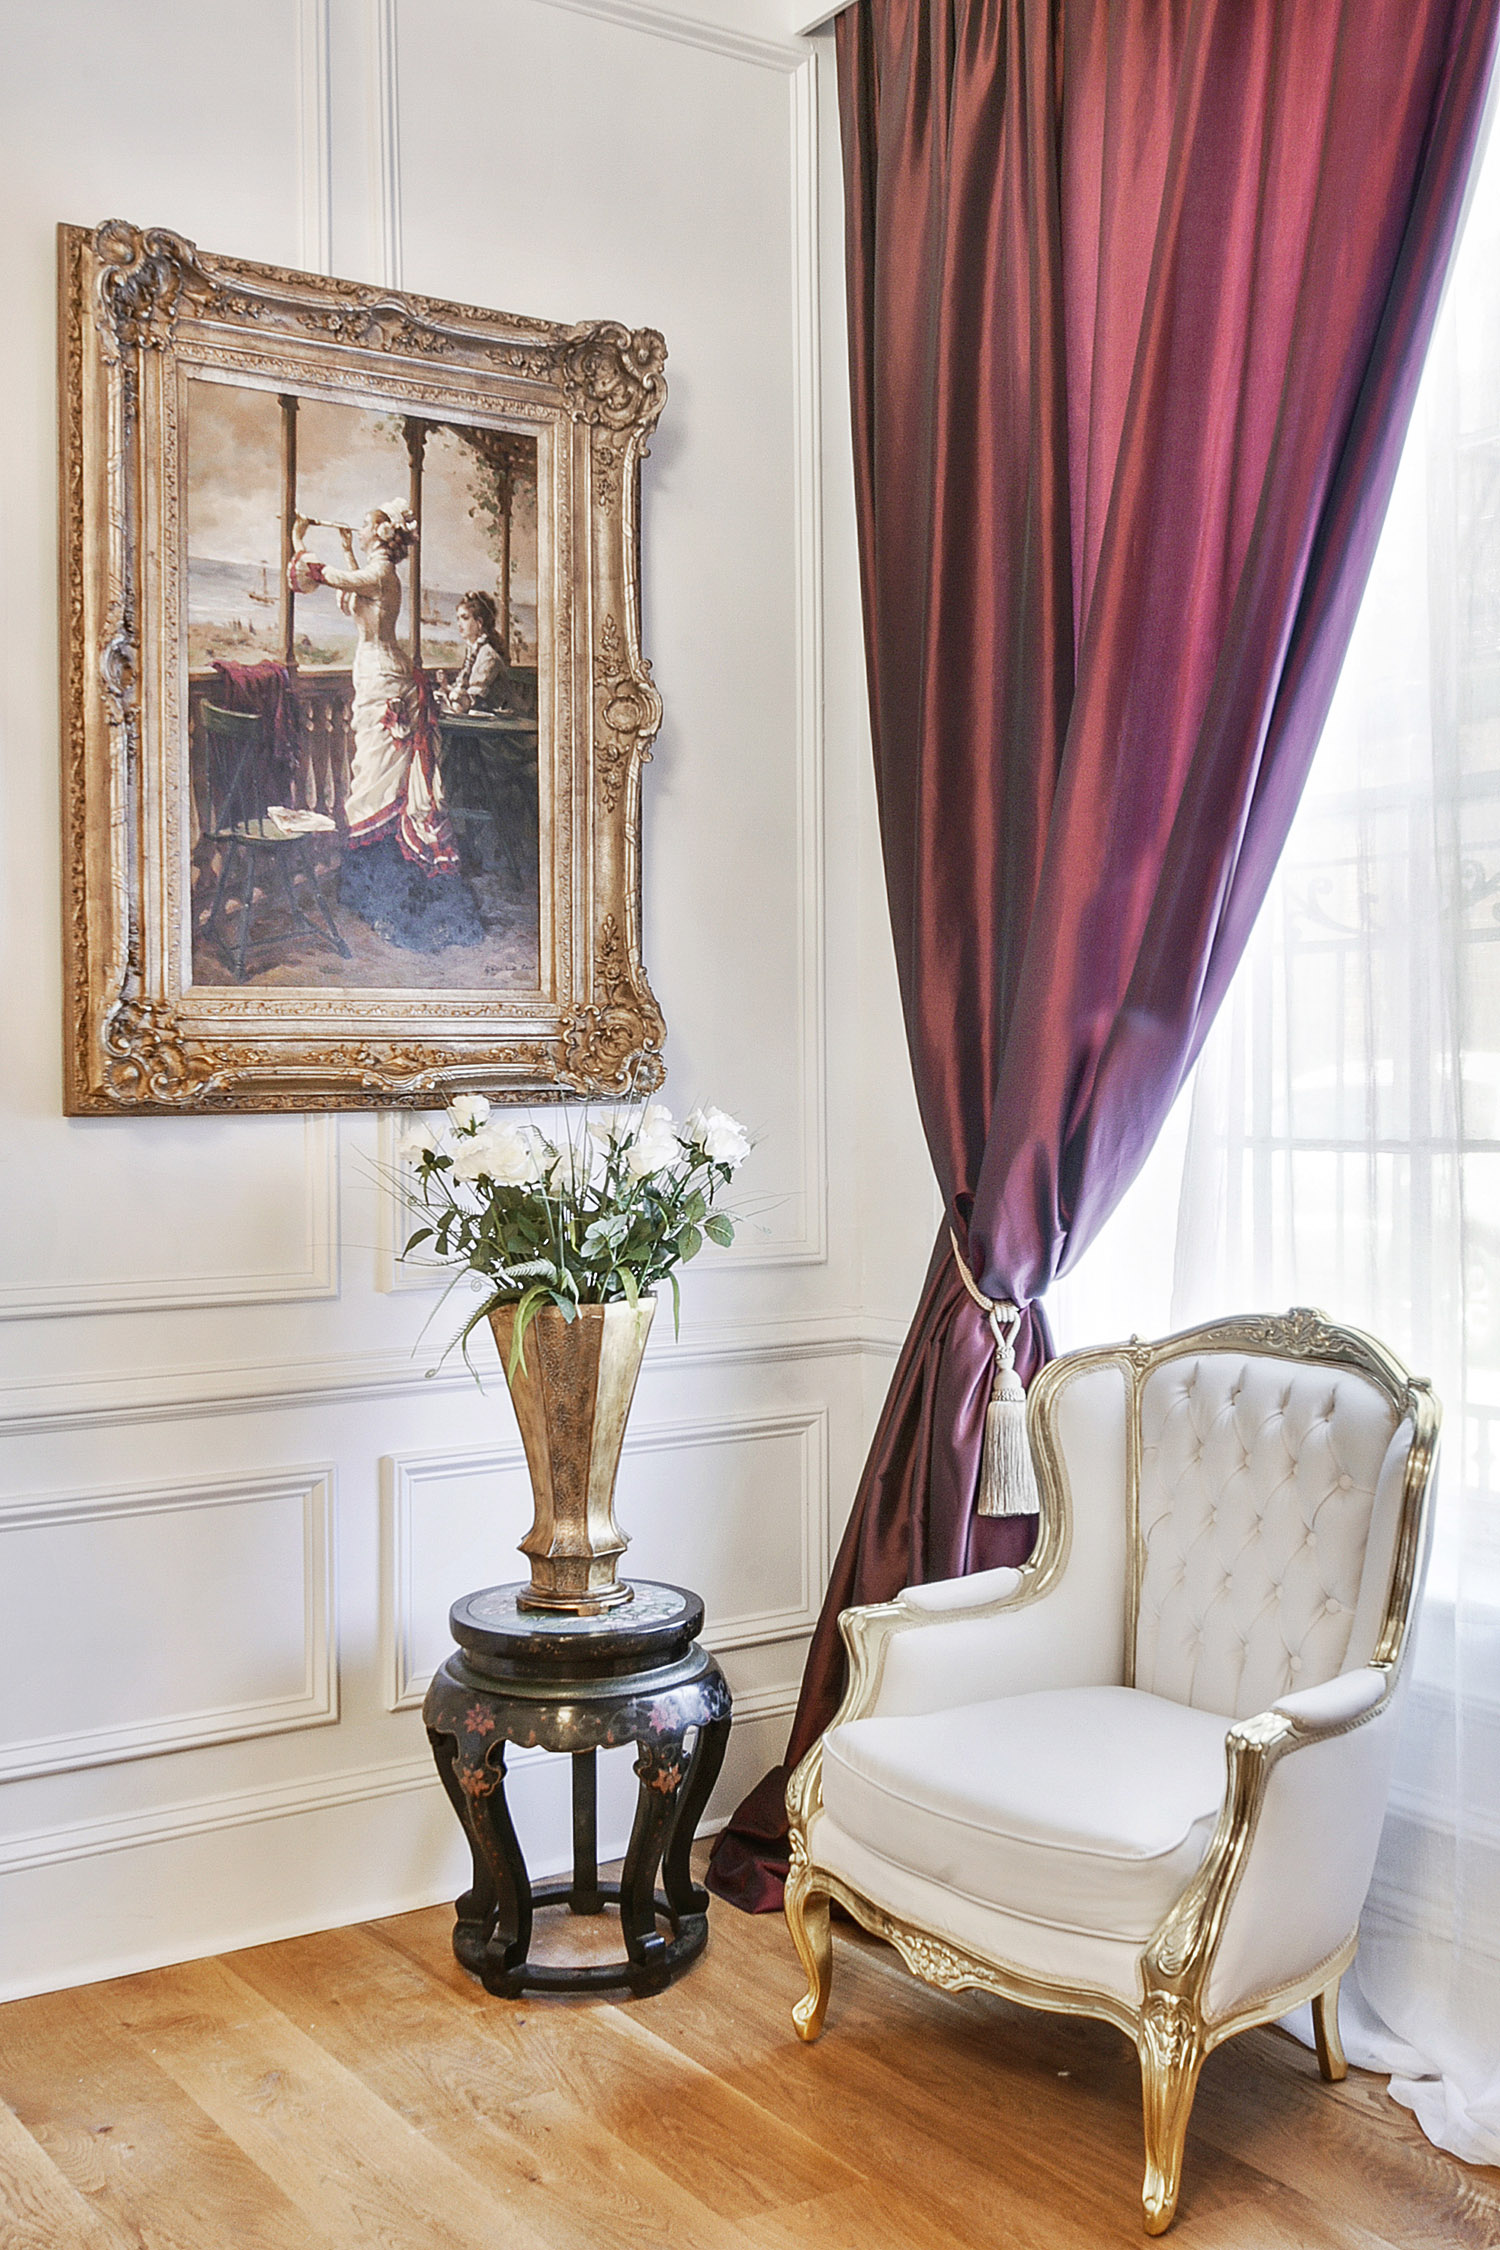 The palace new orleans hospitality nola airbnb rental